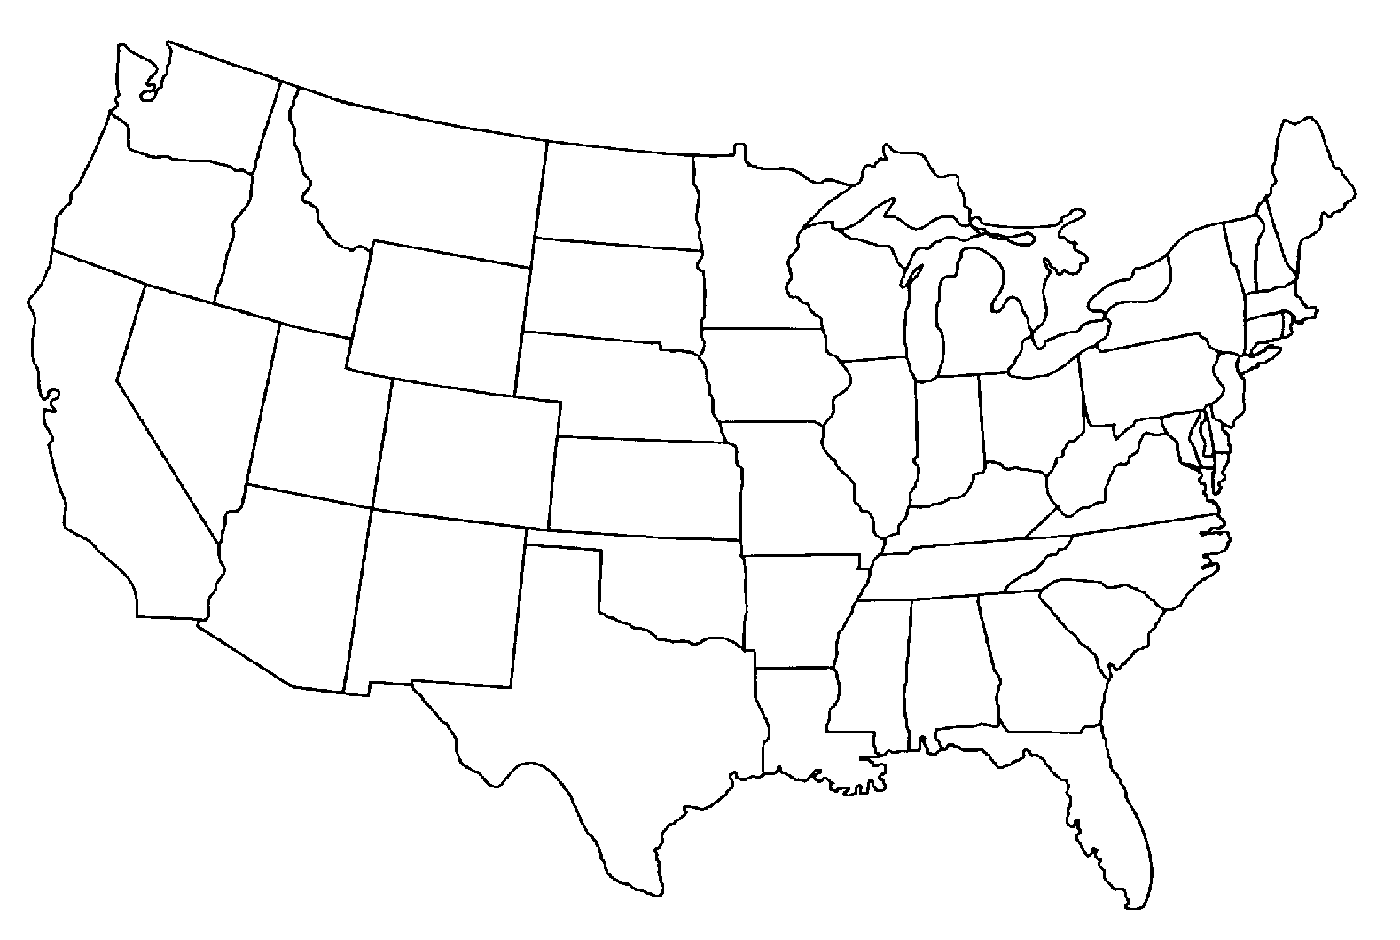 Png Of United States Map Outline & Free Of United States Map Outline ...